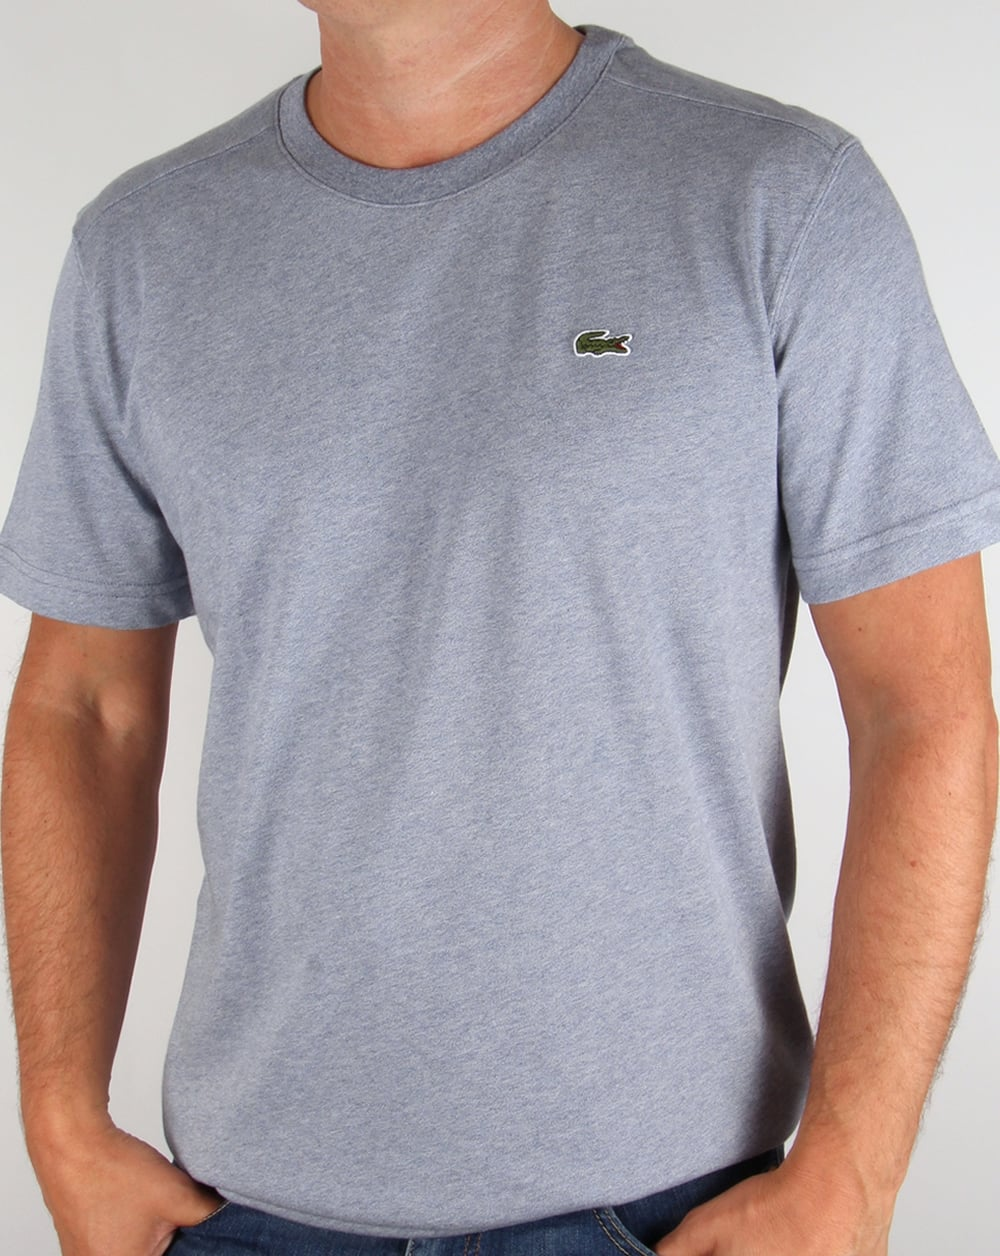 lacoste t shirt blue marl tee crew neck sport mens. Black Bedroom Furniture Sets. Home Design Ideas